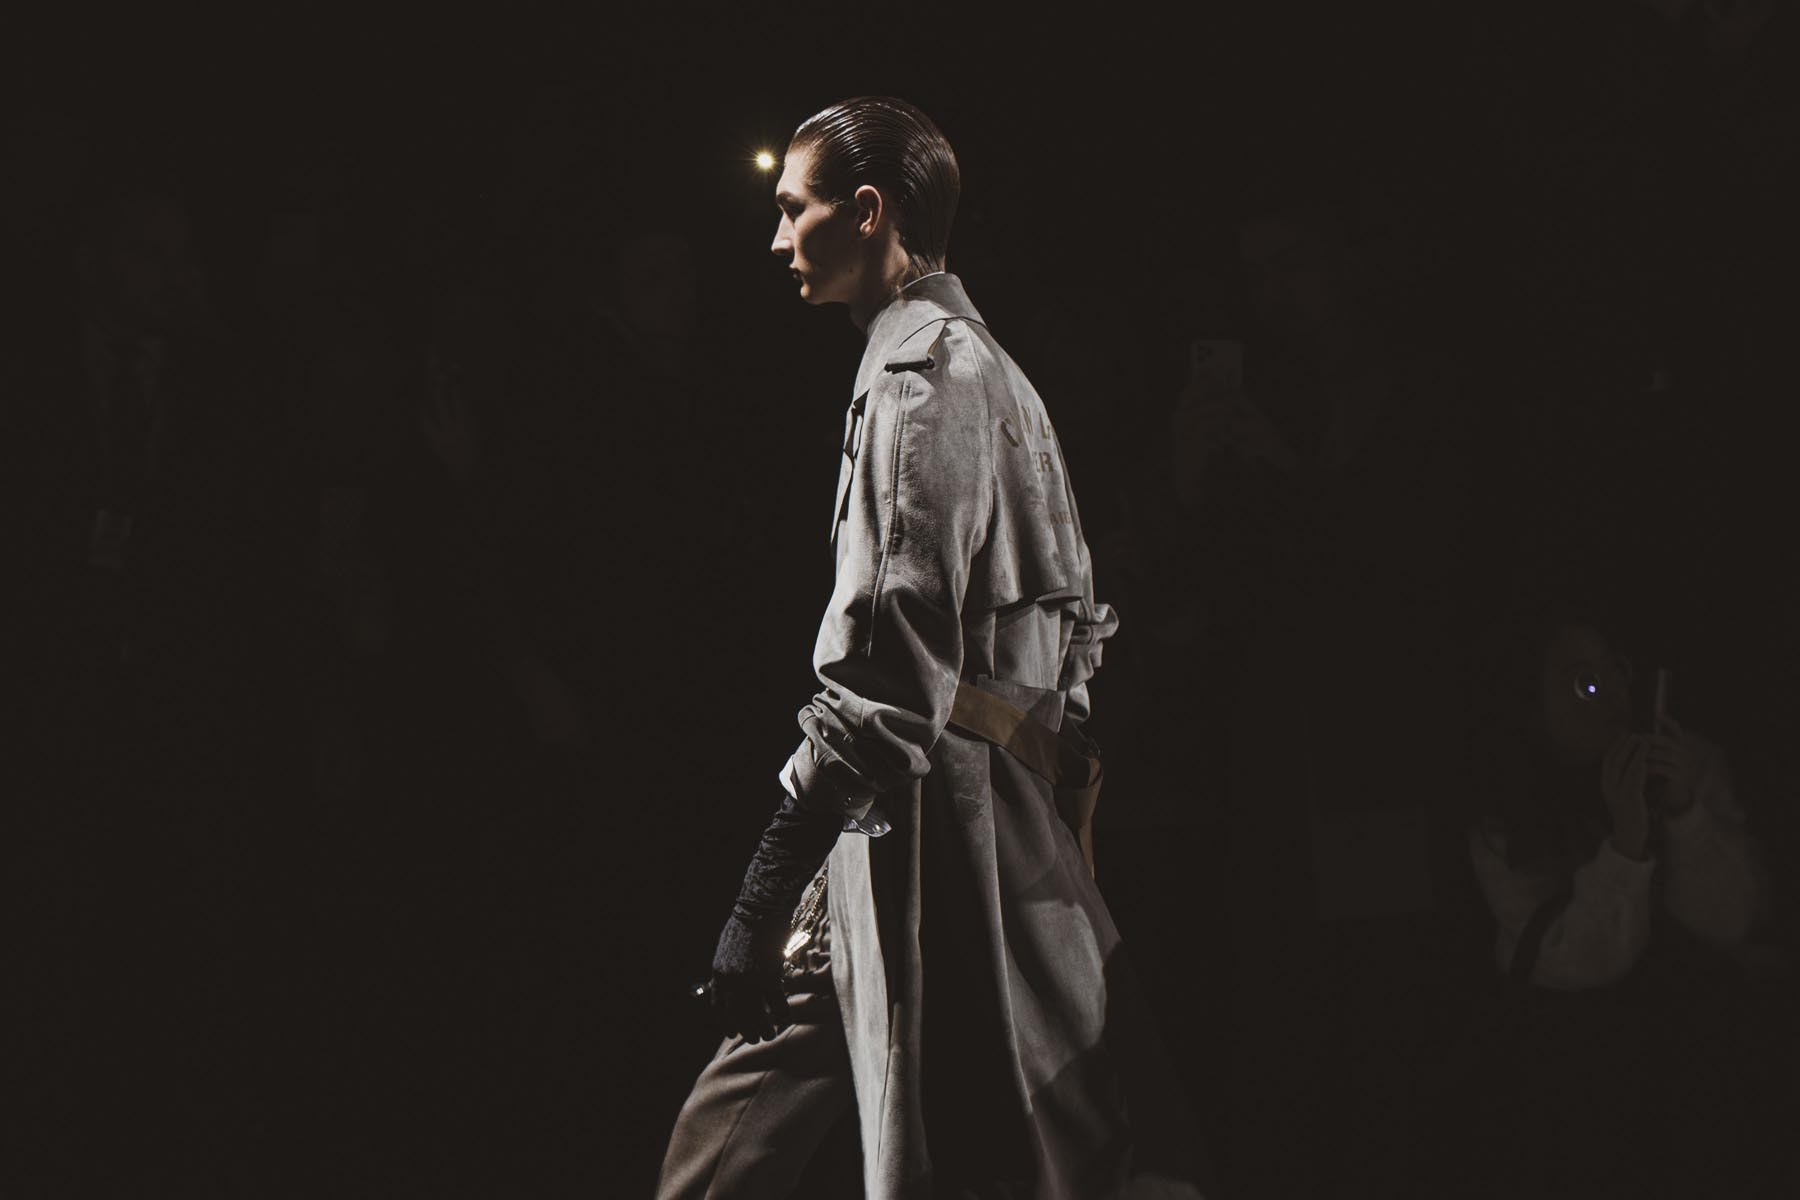 Dior-Homme-Hiver-2020-21-23